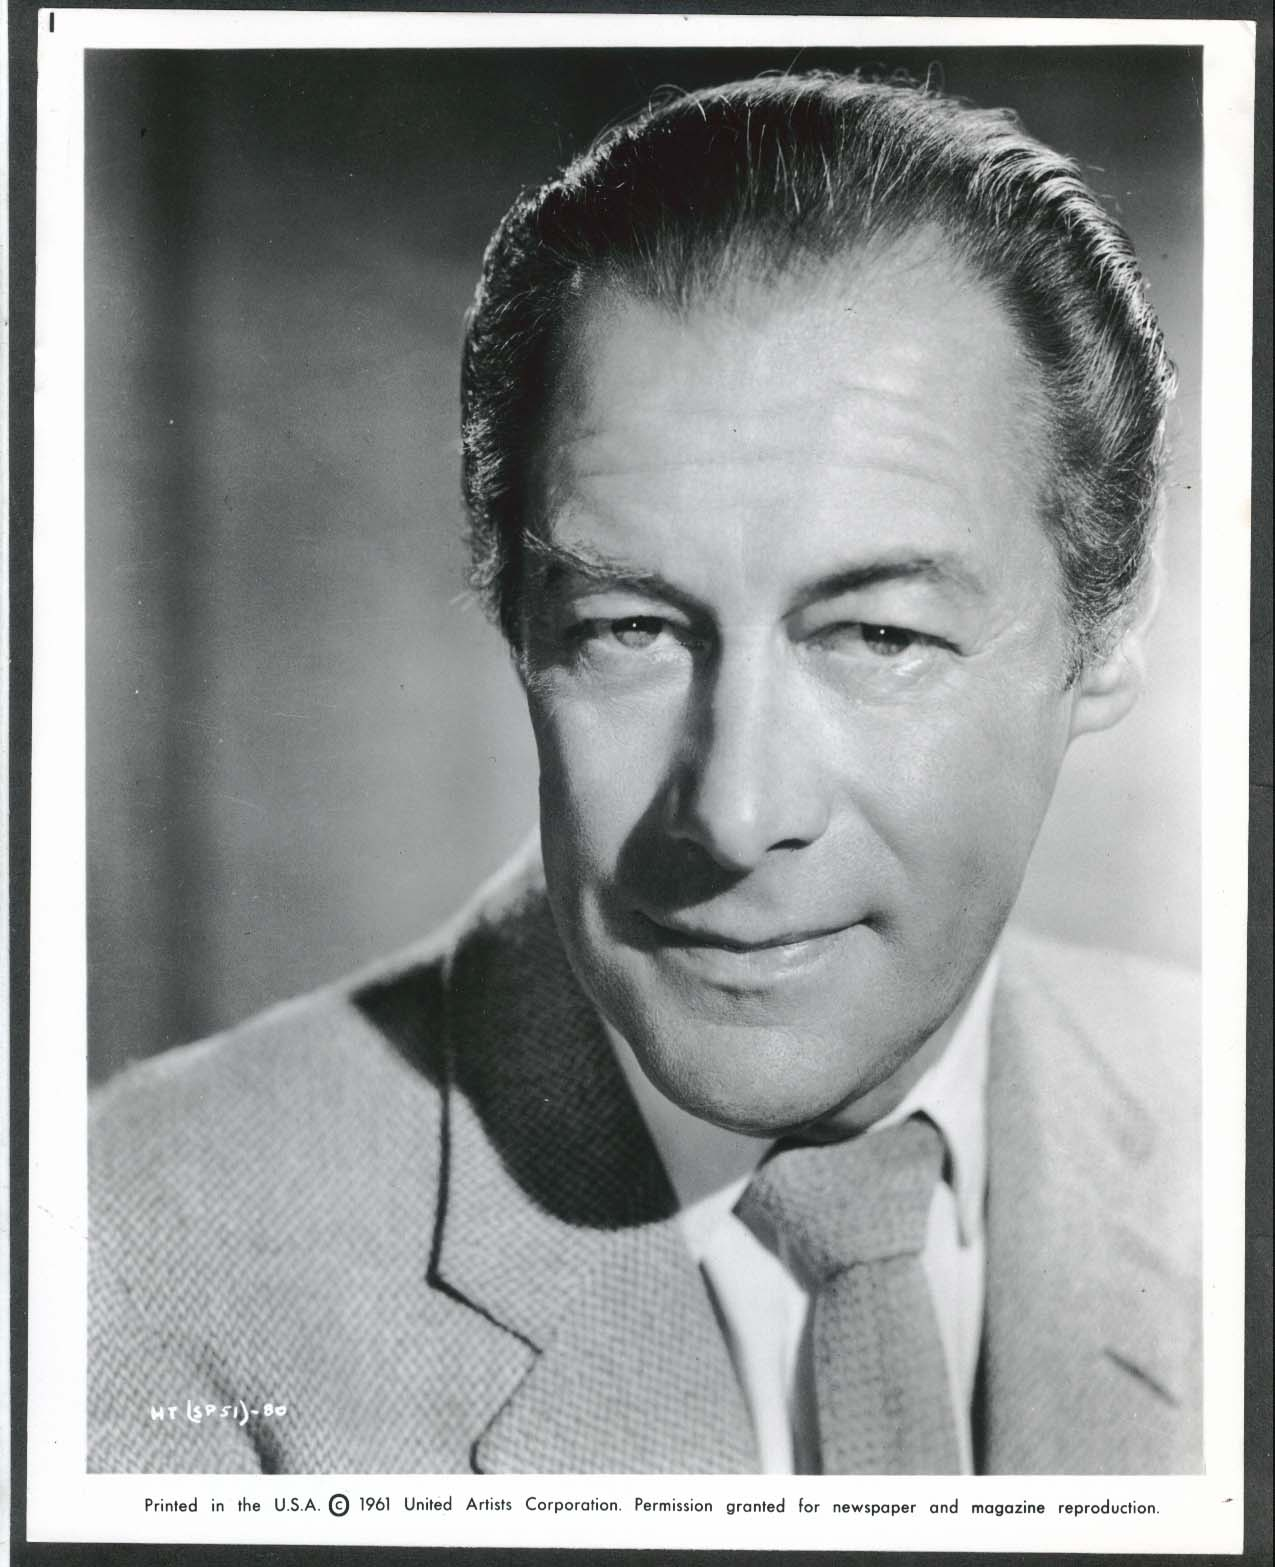 Image for Rex Harrison The Happy Thieves headshot 8x10 photograph 1961